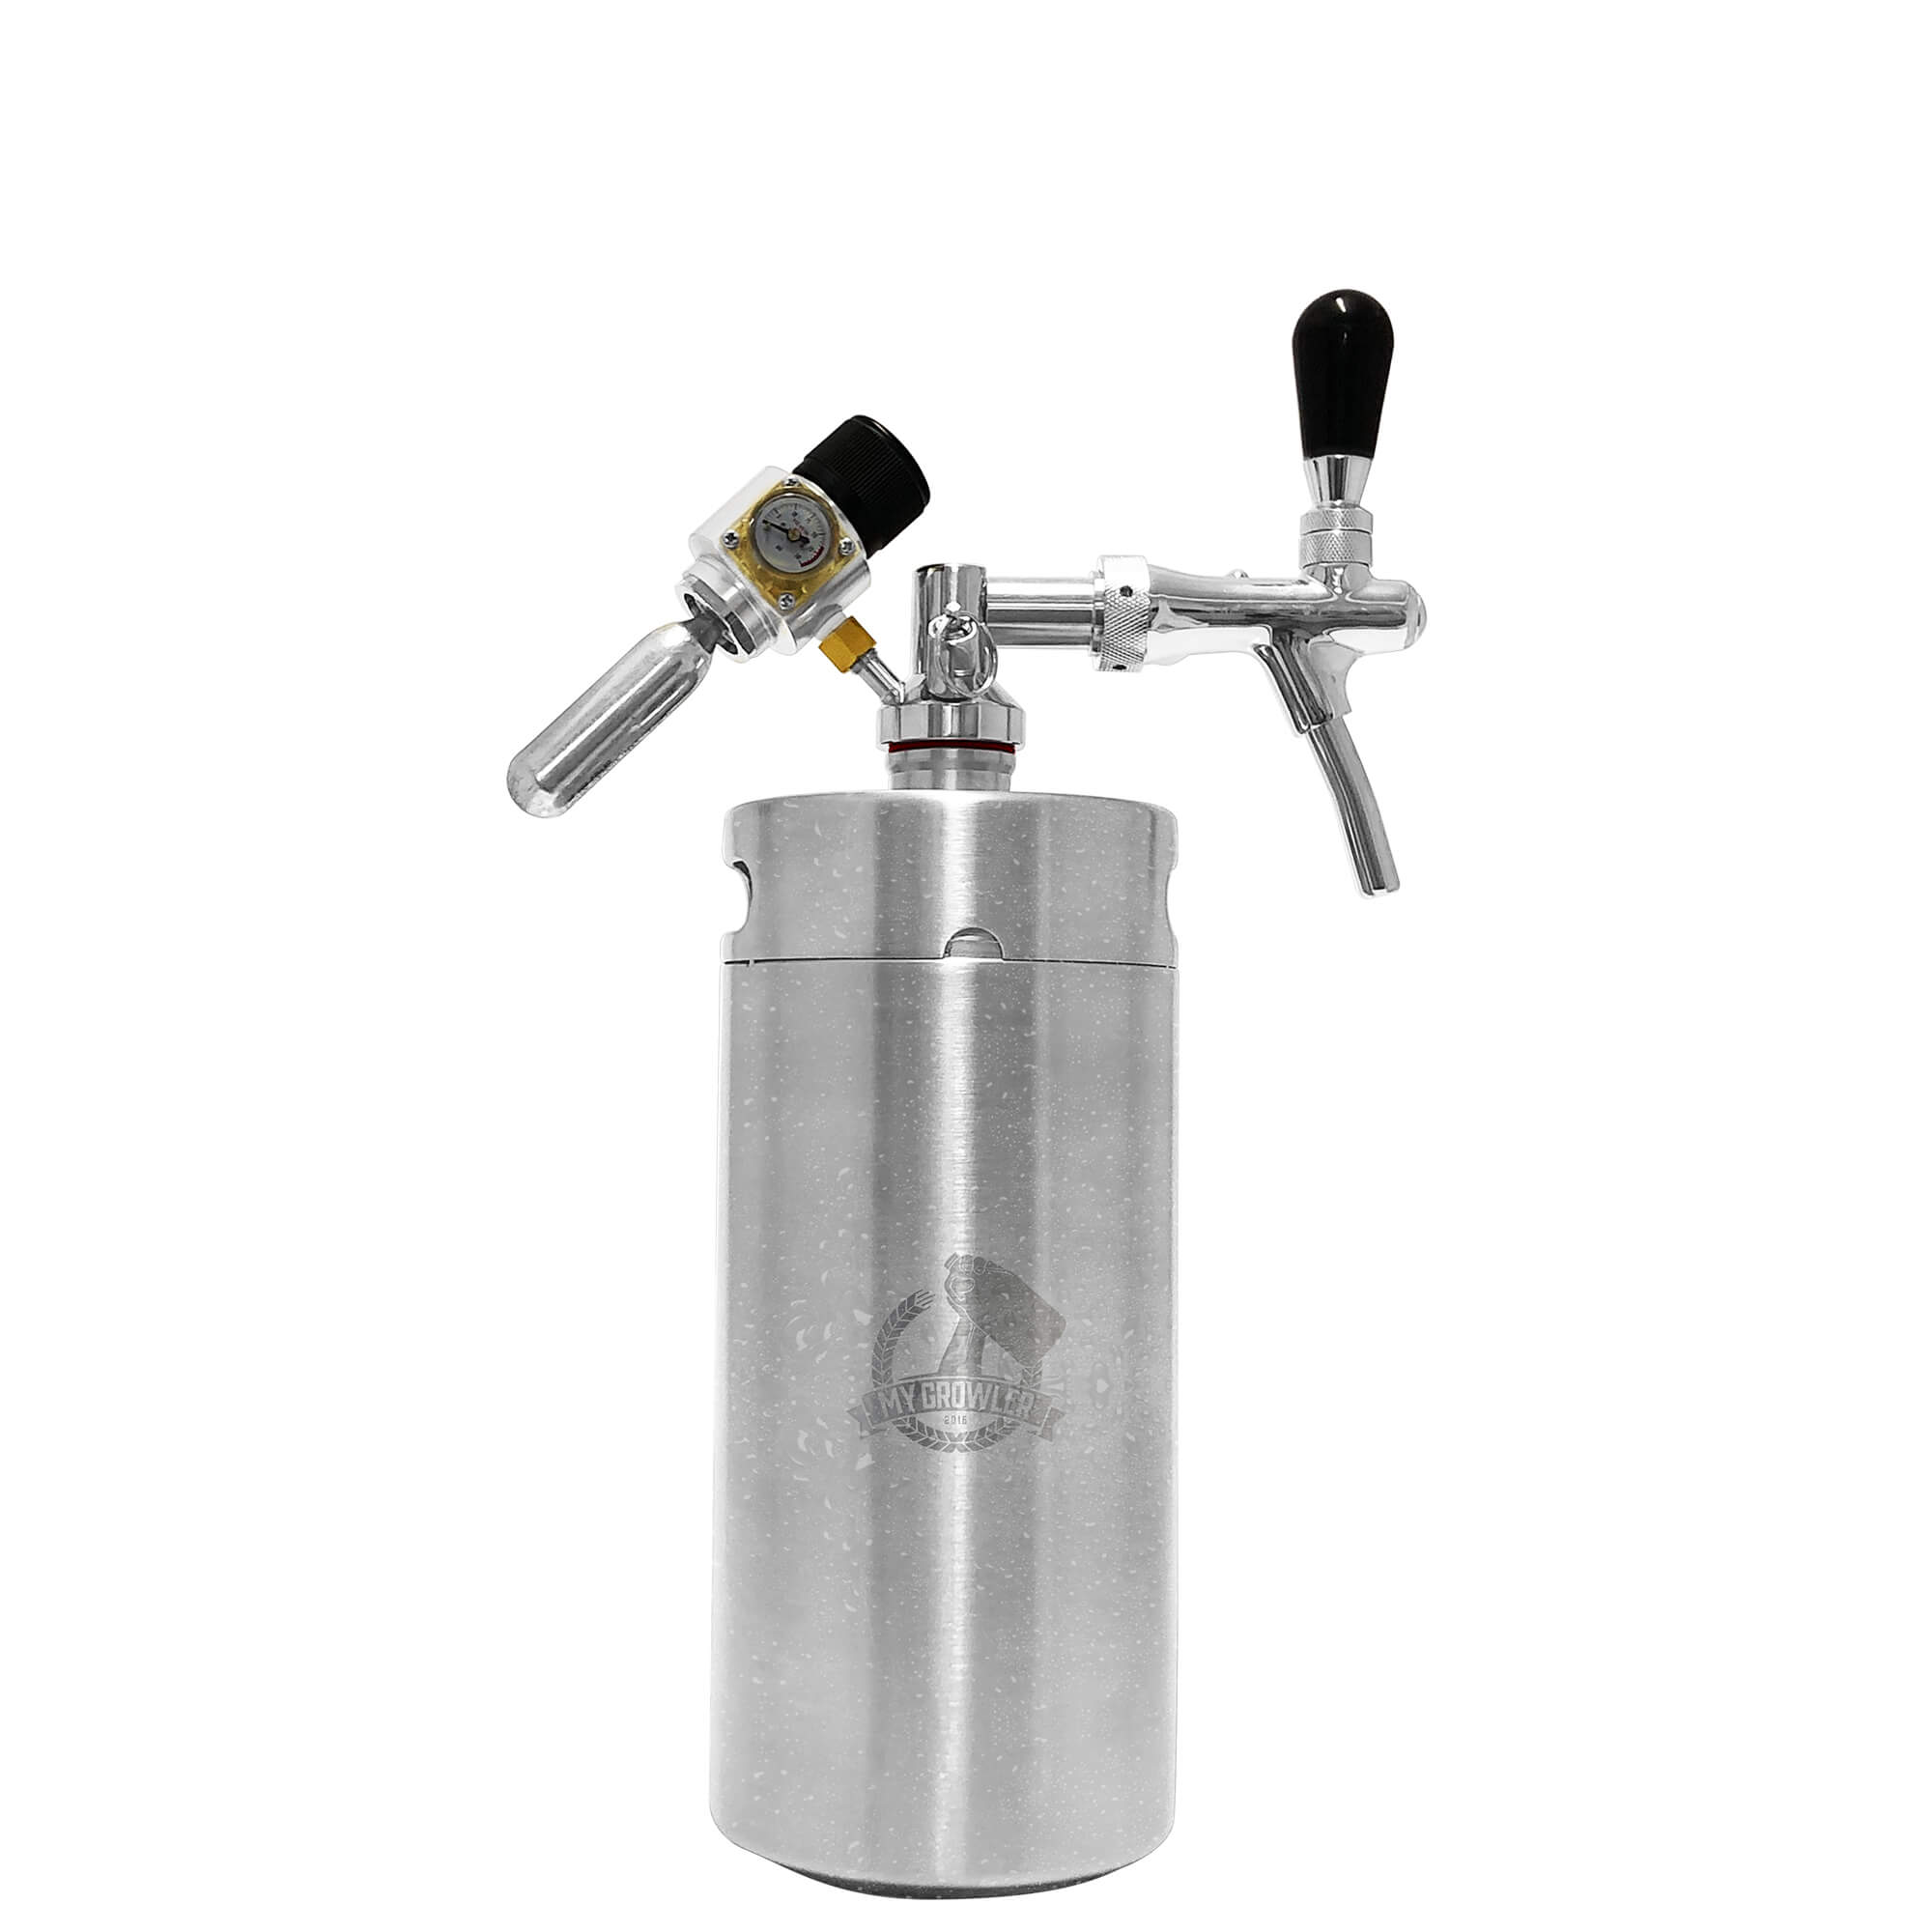 Kit My Keg, Growler Inox 3,8L com torneira italiana Premium